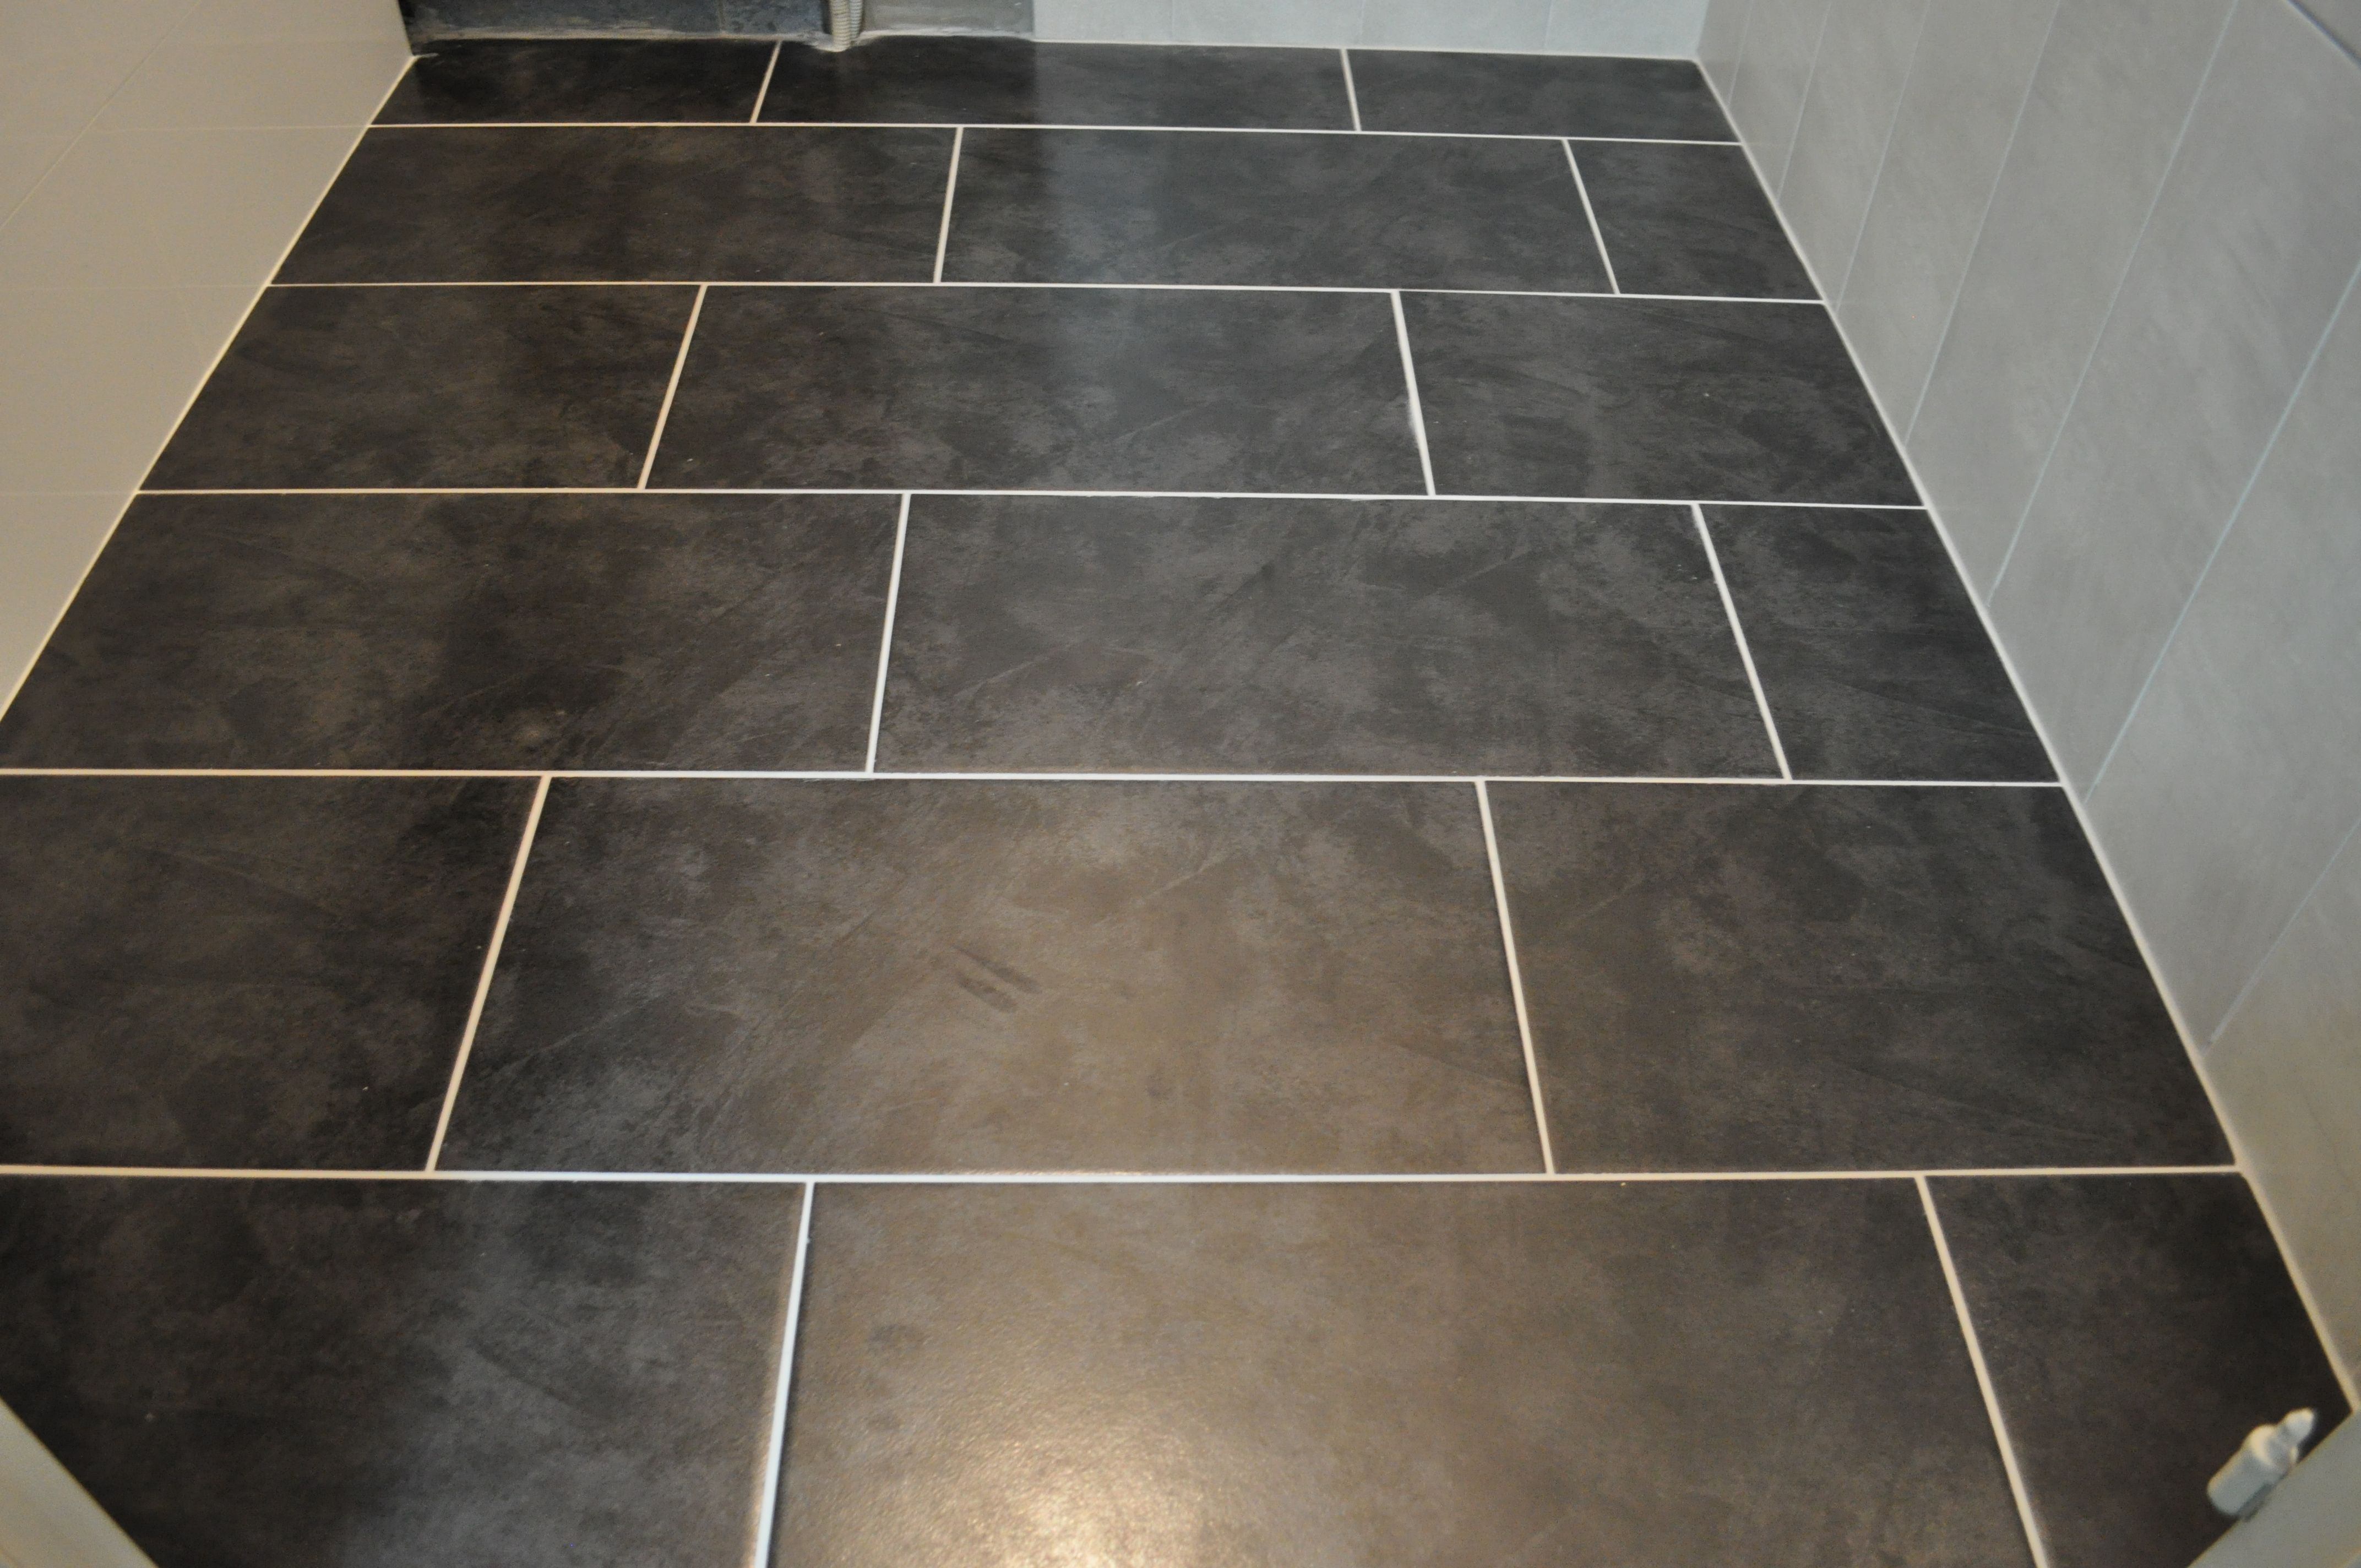 Rectangular floor tiles in brick pattern house plans pinterest rectangular floor tiles in brick pattern dailygadgetfo Image collections